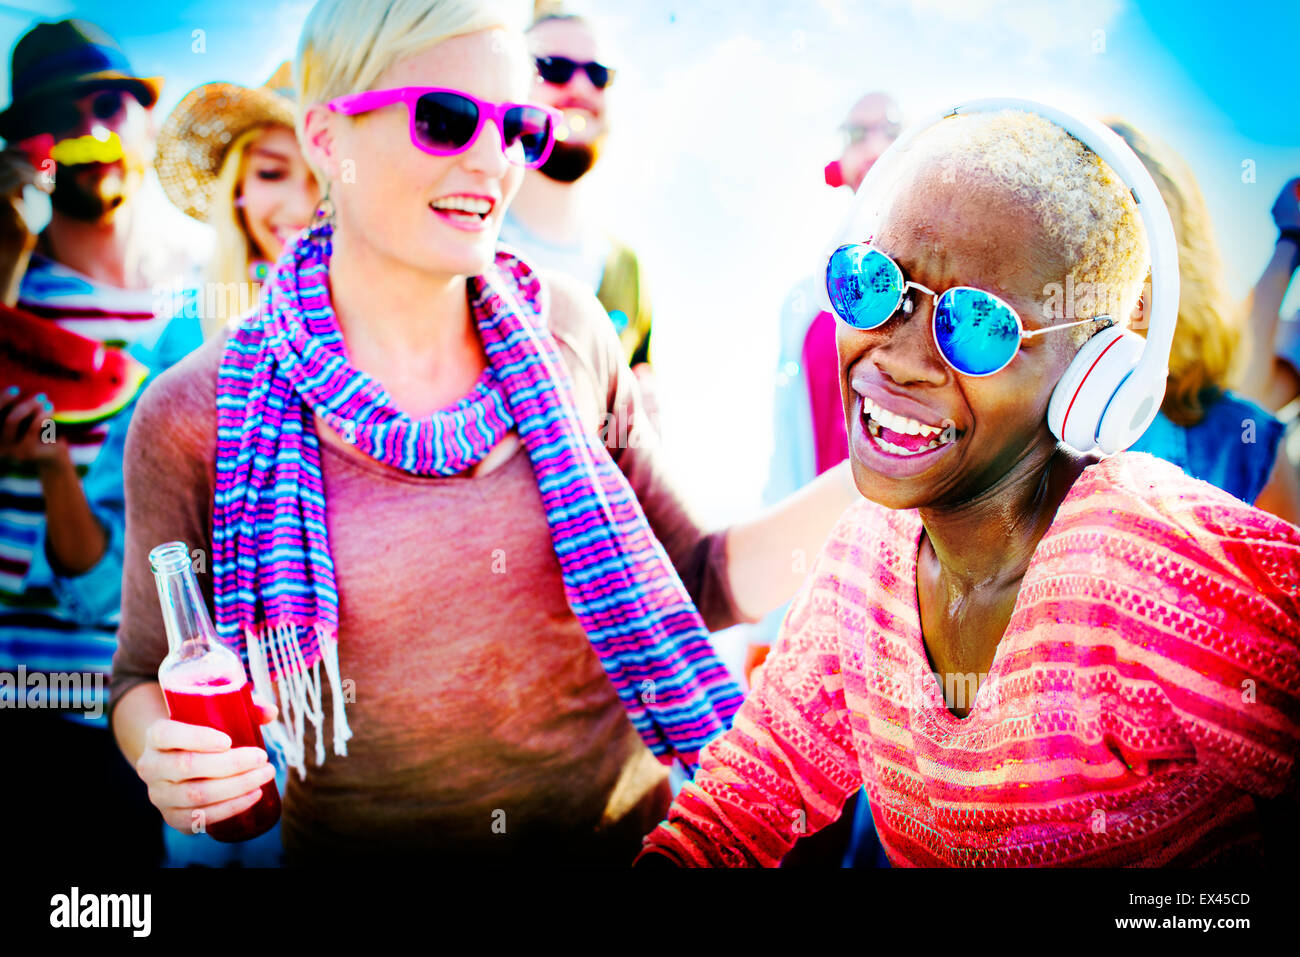 Beach Party Music Dancing Friendship Summer Concept - Stock Image